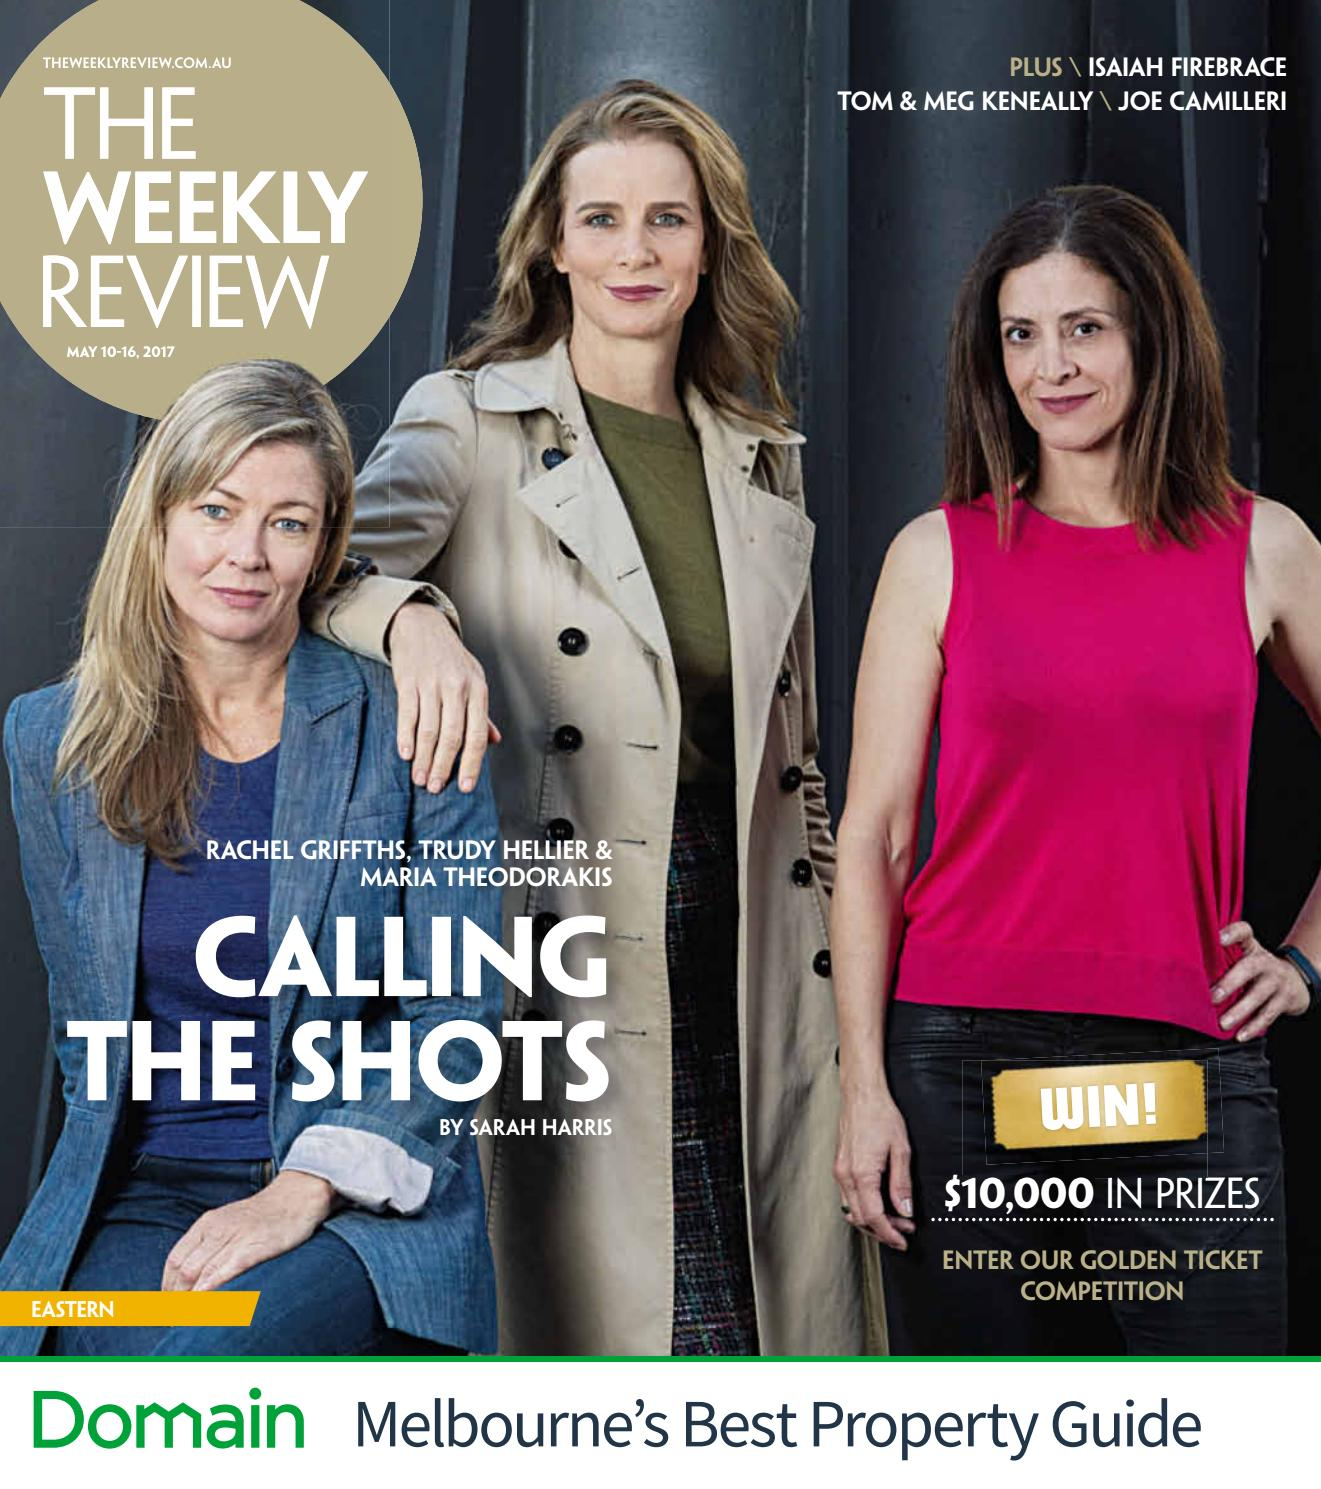 7879096a507d The Weekly Review Eastern by The Weekly Review - issuu